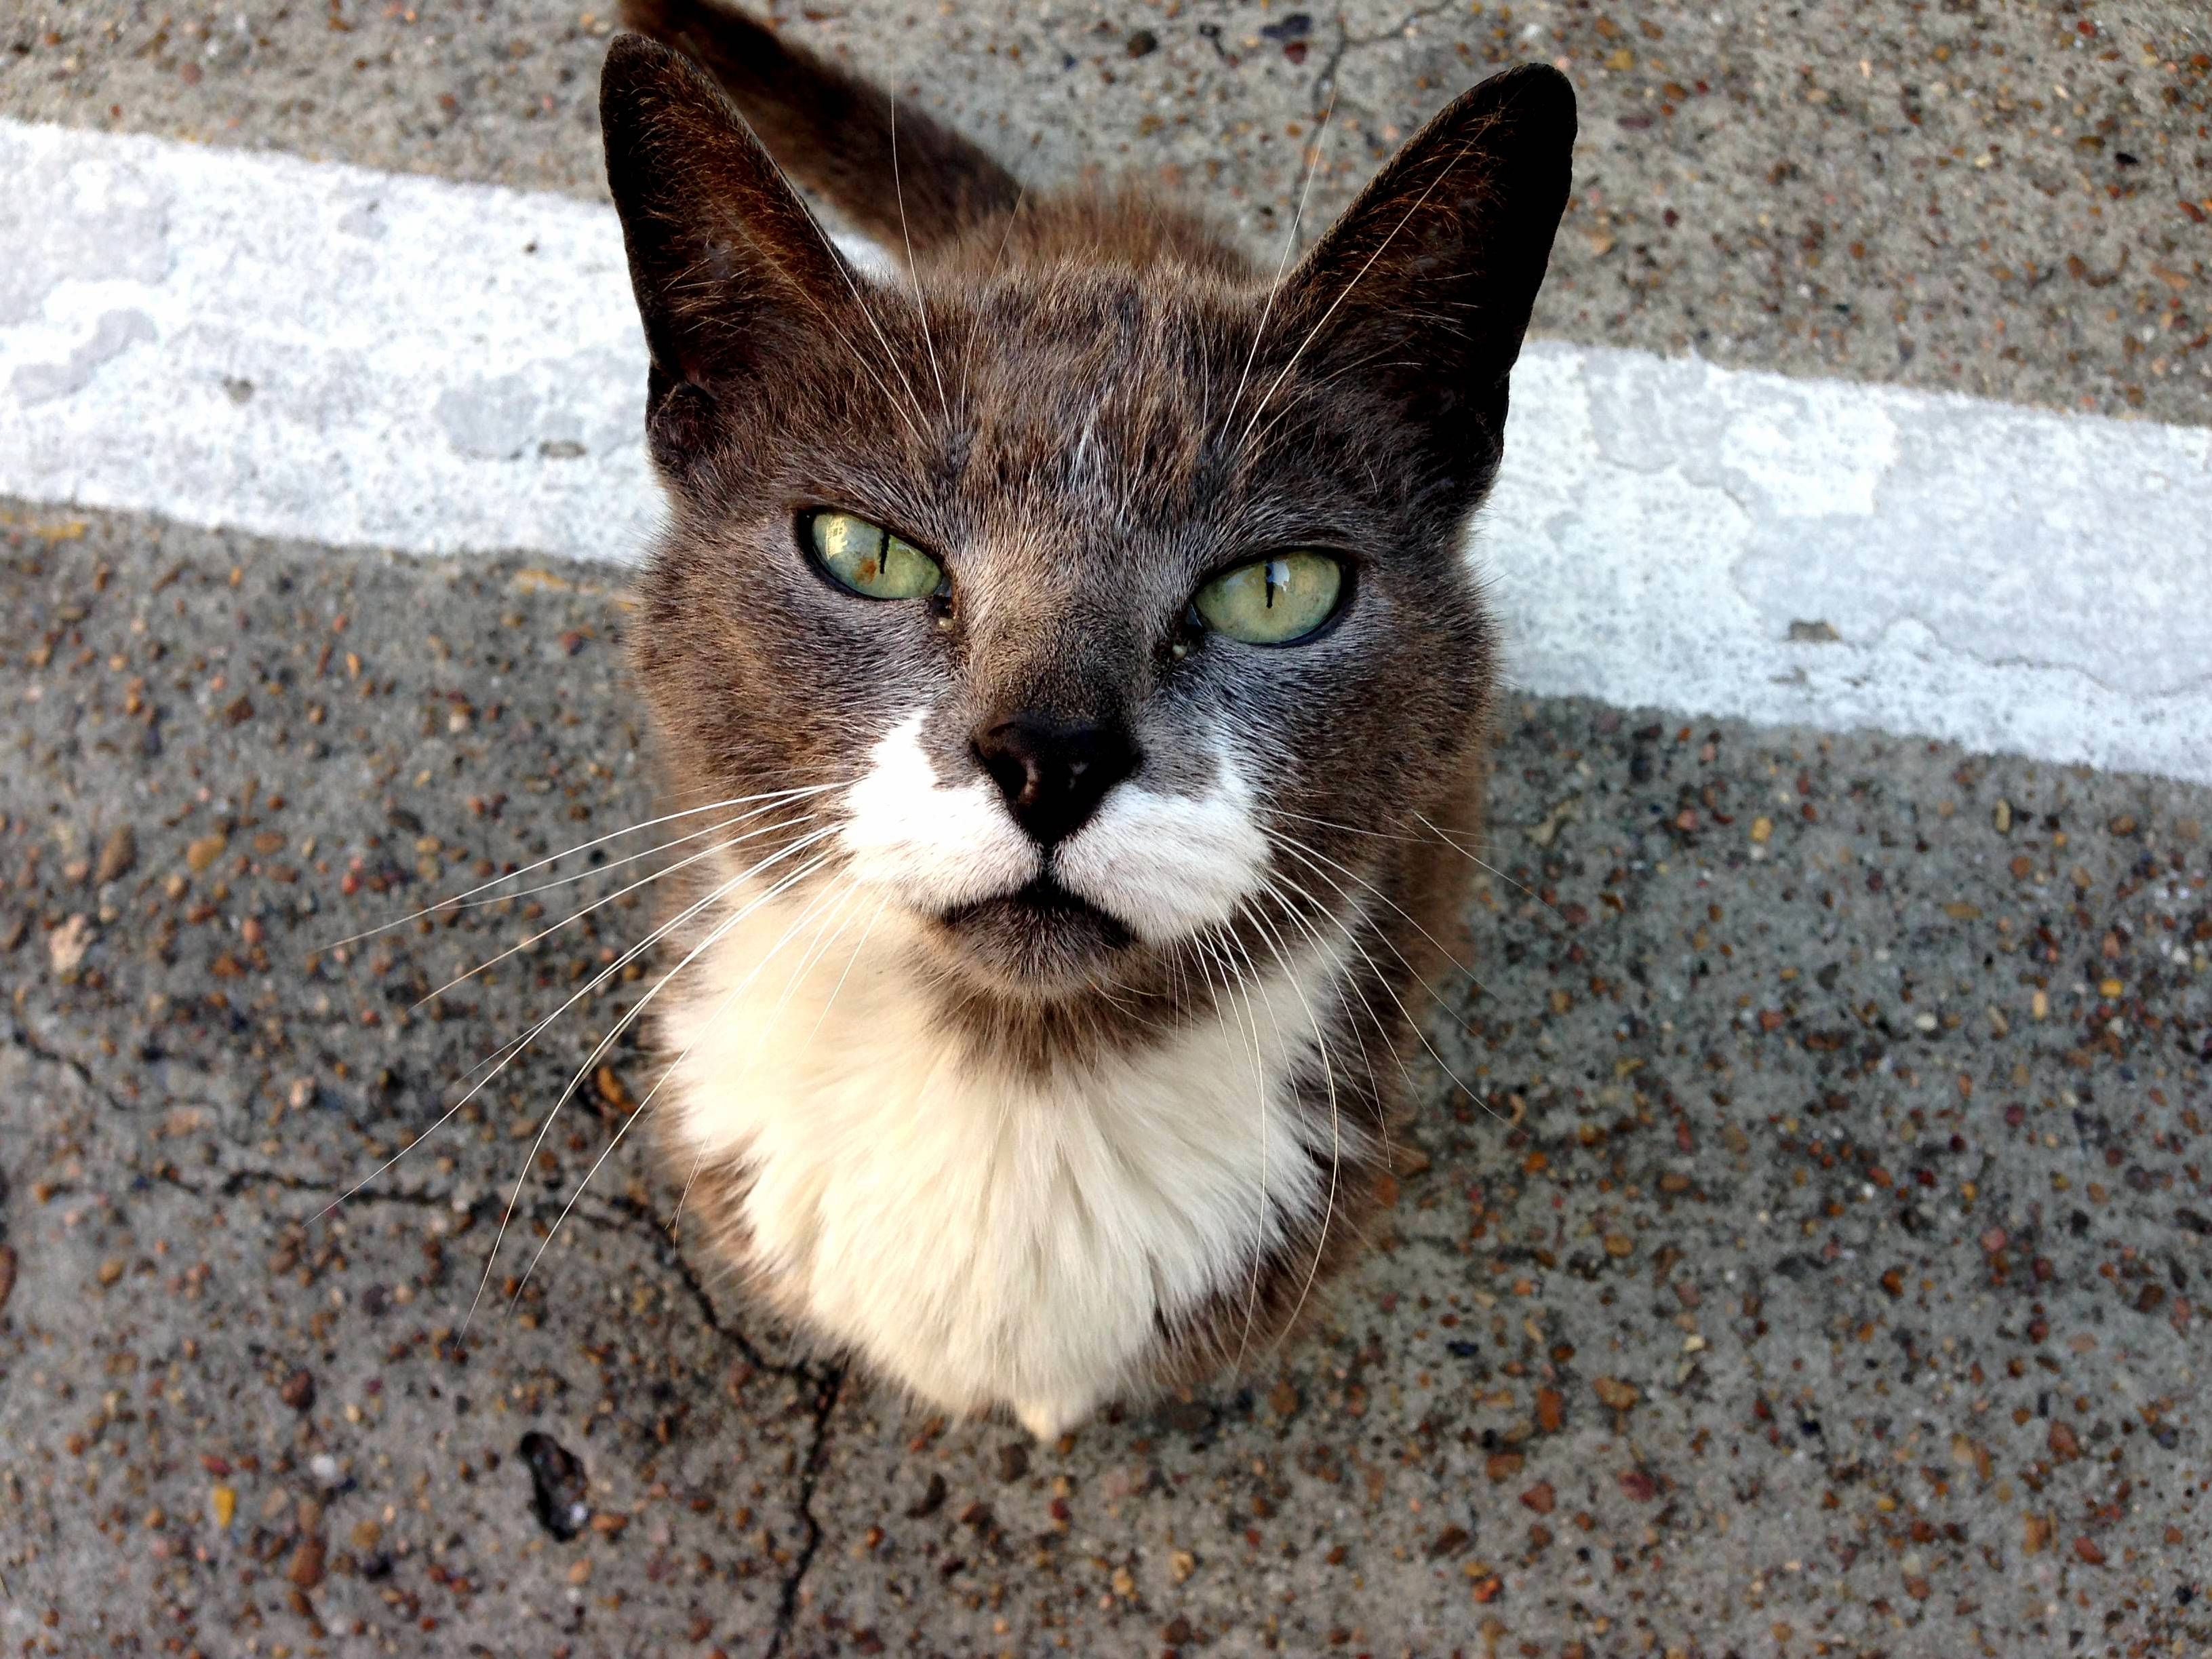 Gentleman cat has perfect moustachebeard. resident of galveston tx.